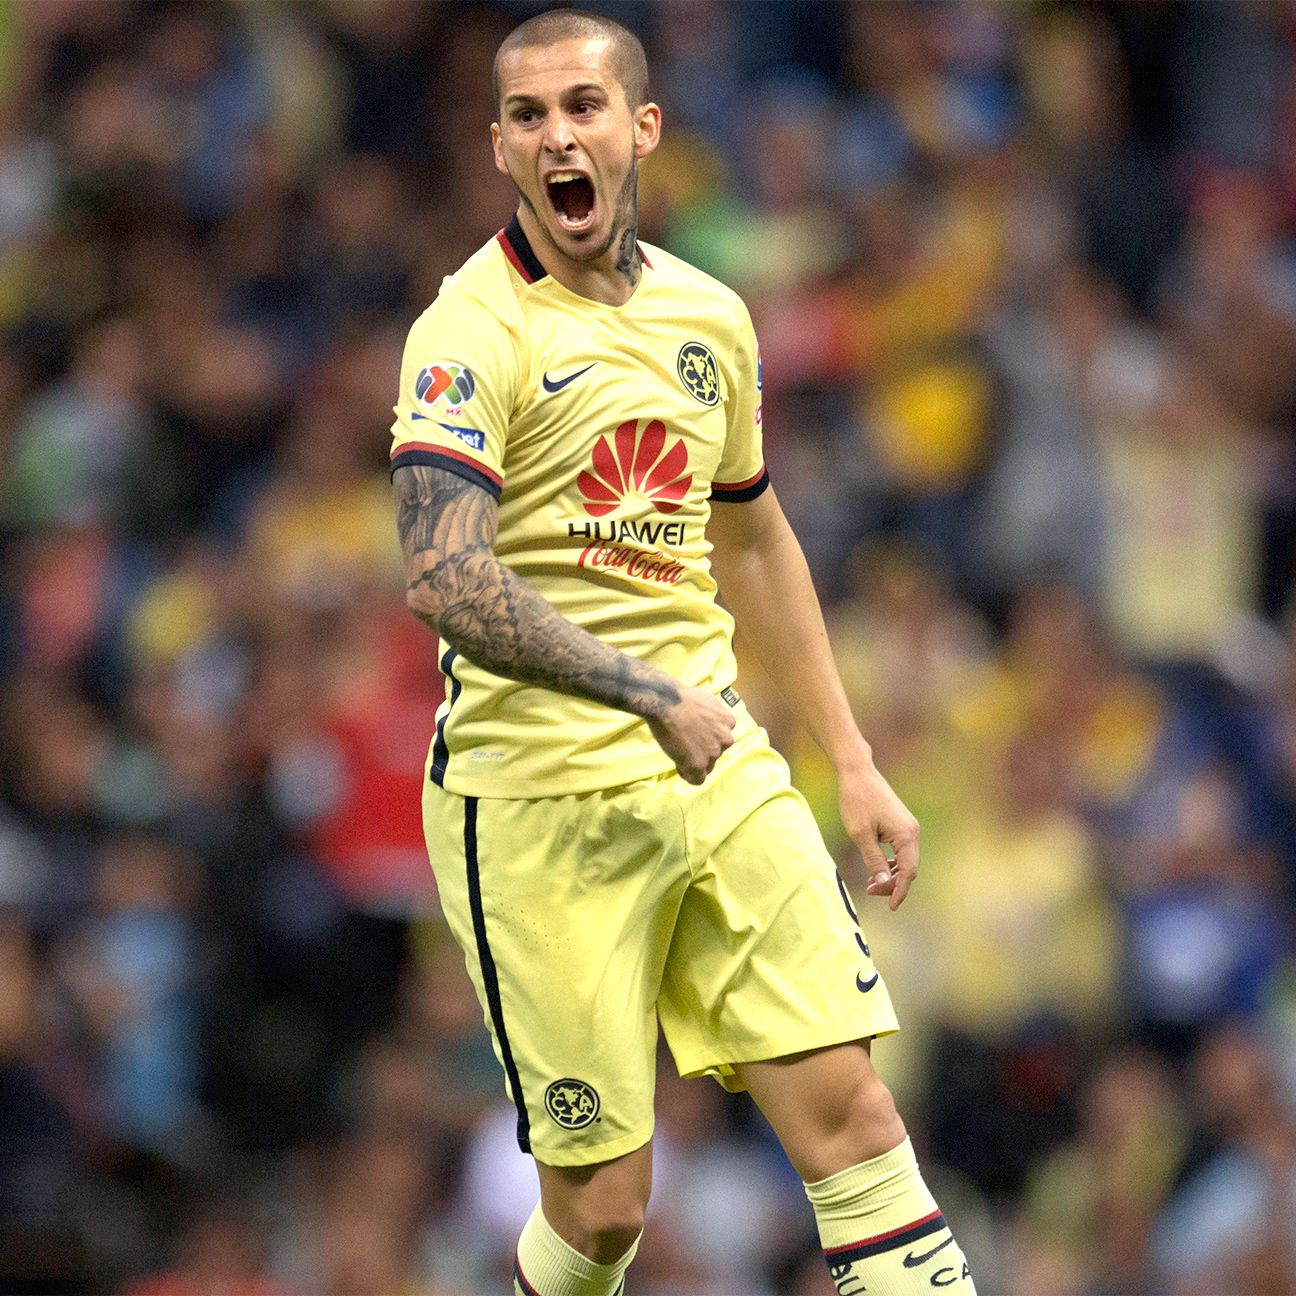 Dario Benedetto's goal and assist helped make for an easy second half for Club America against Dorados.